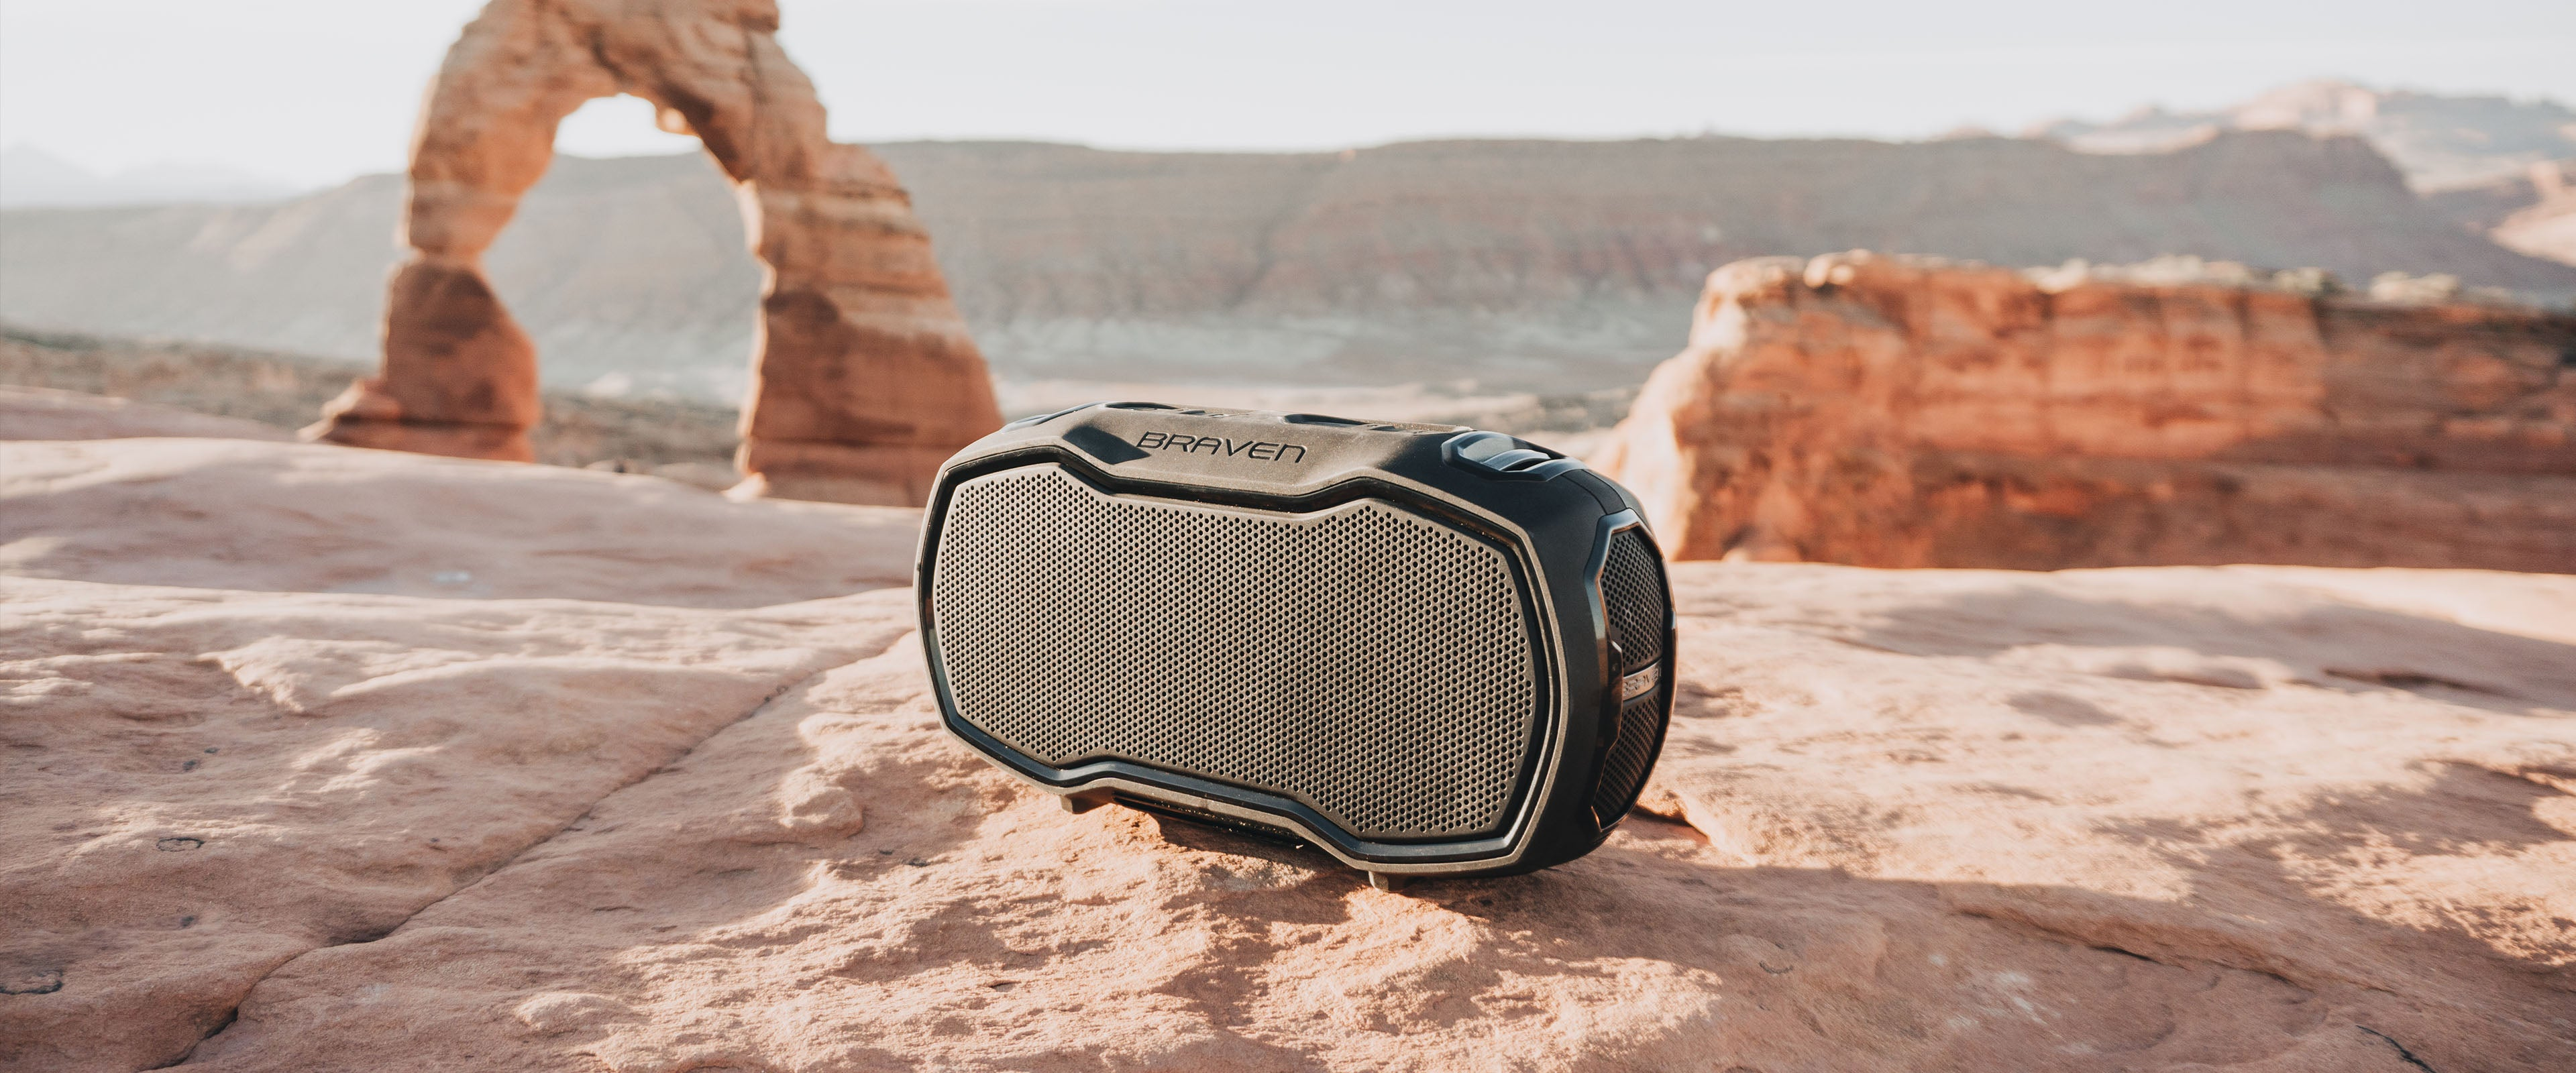 A speaker on a rock by Delicate Arch in Arches National Park